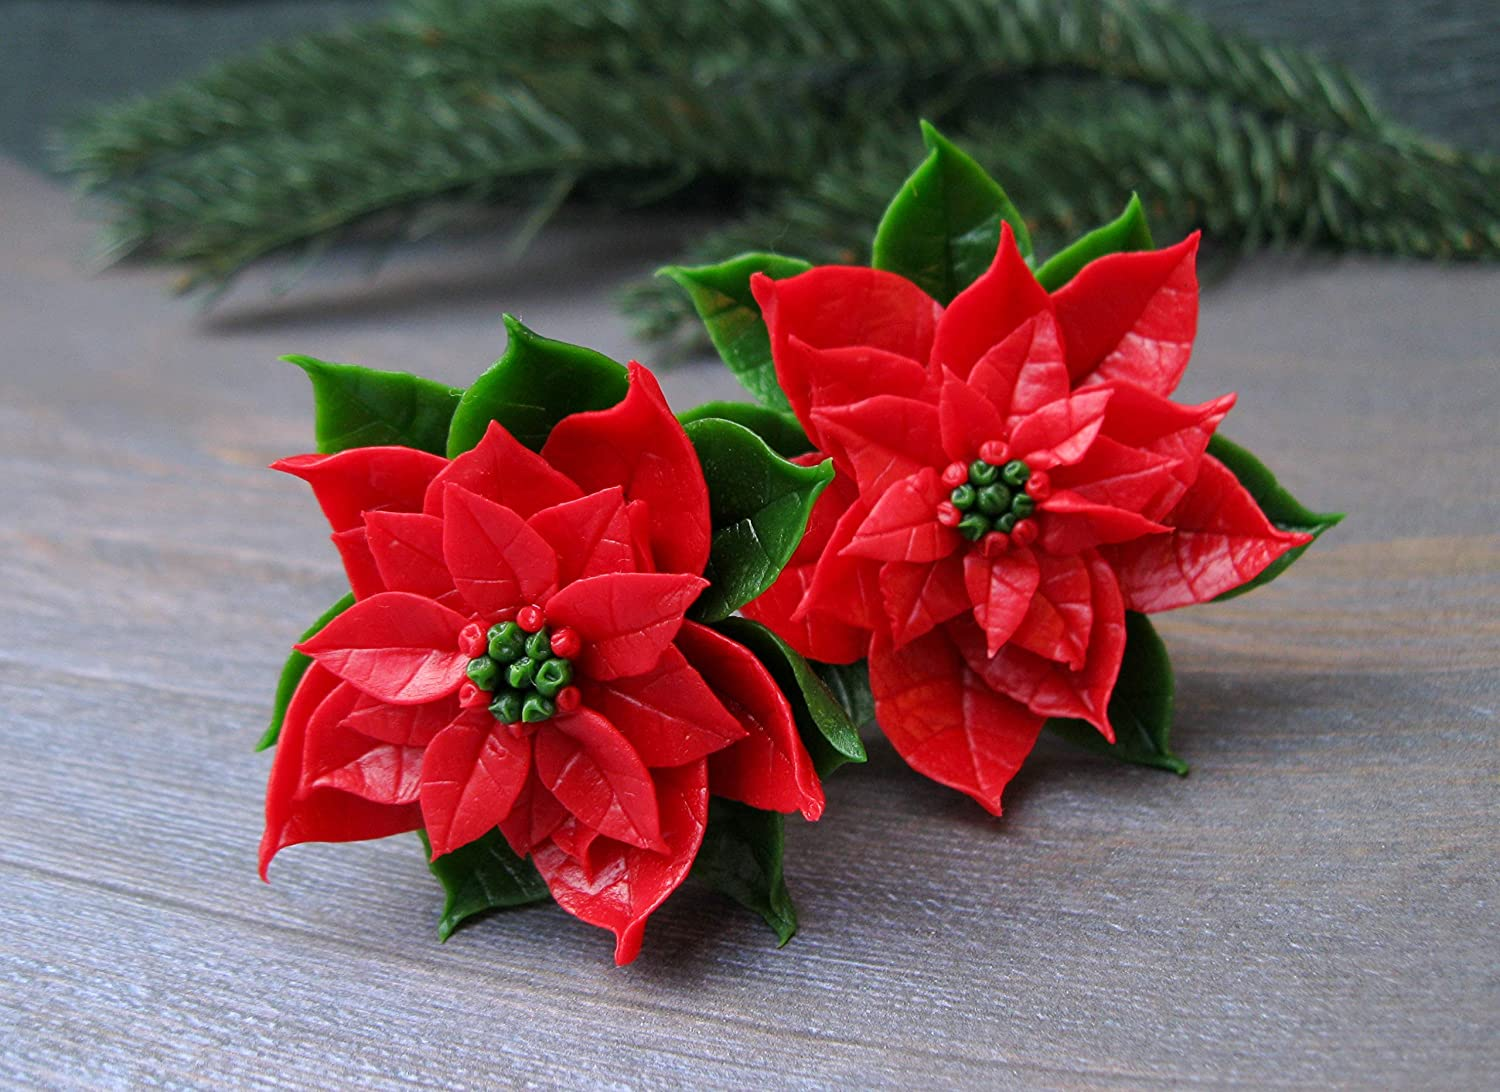 Christmas star hair clip Red green poinsettia Holiday gift for daughter granddaughter Winter wedding hairpiece Cute Xmas present party mistletoe New year ...